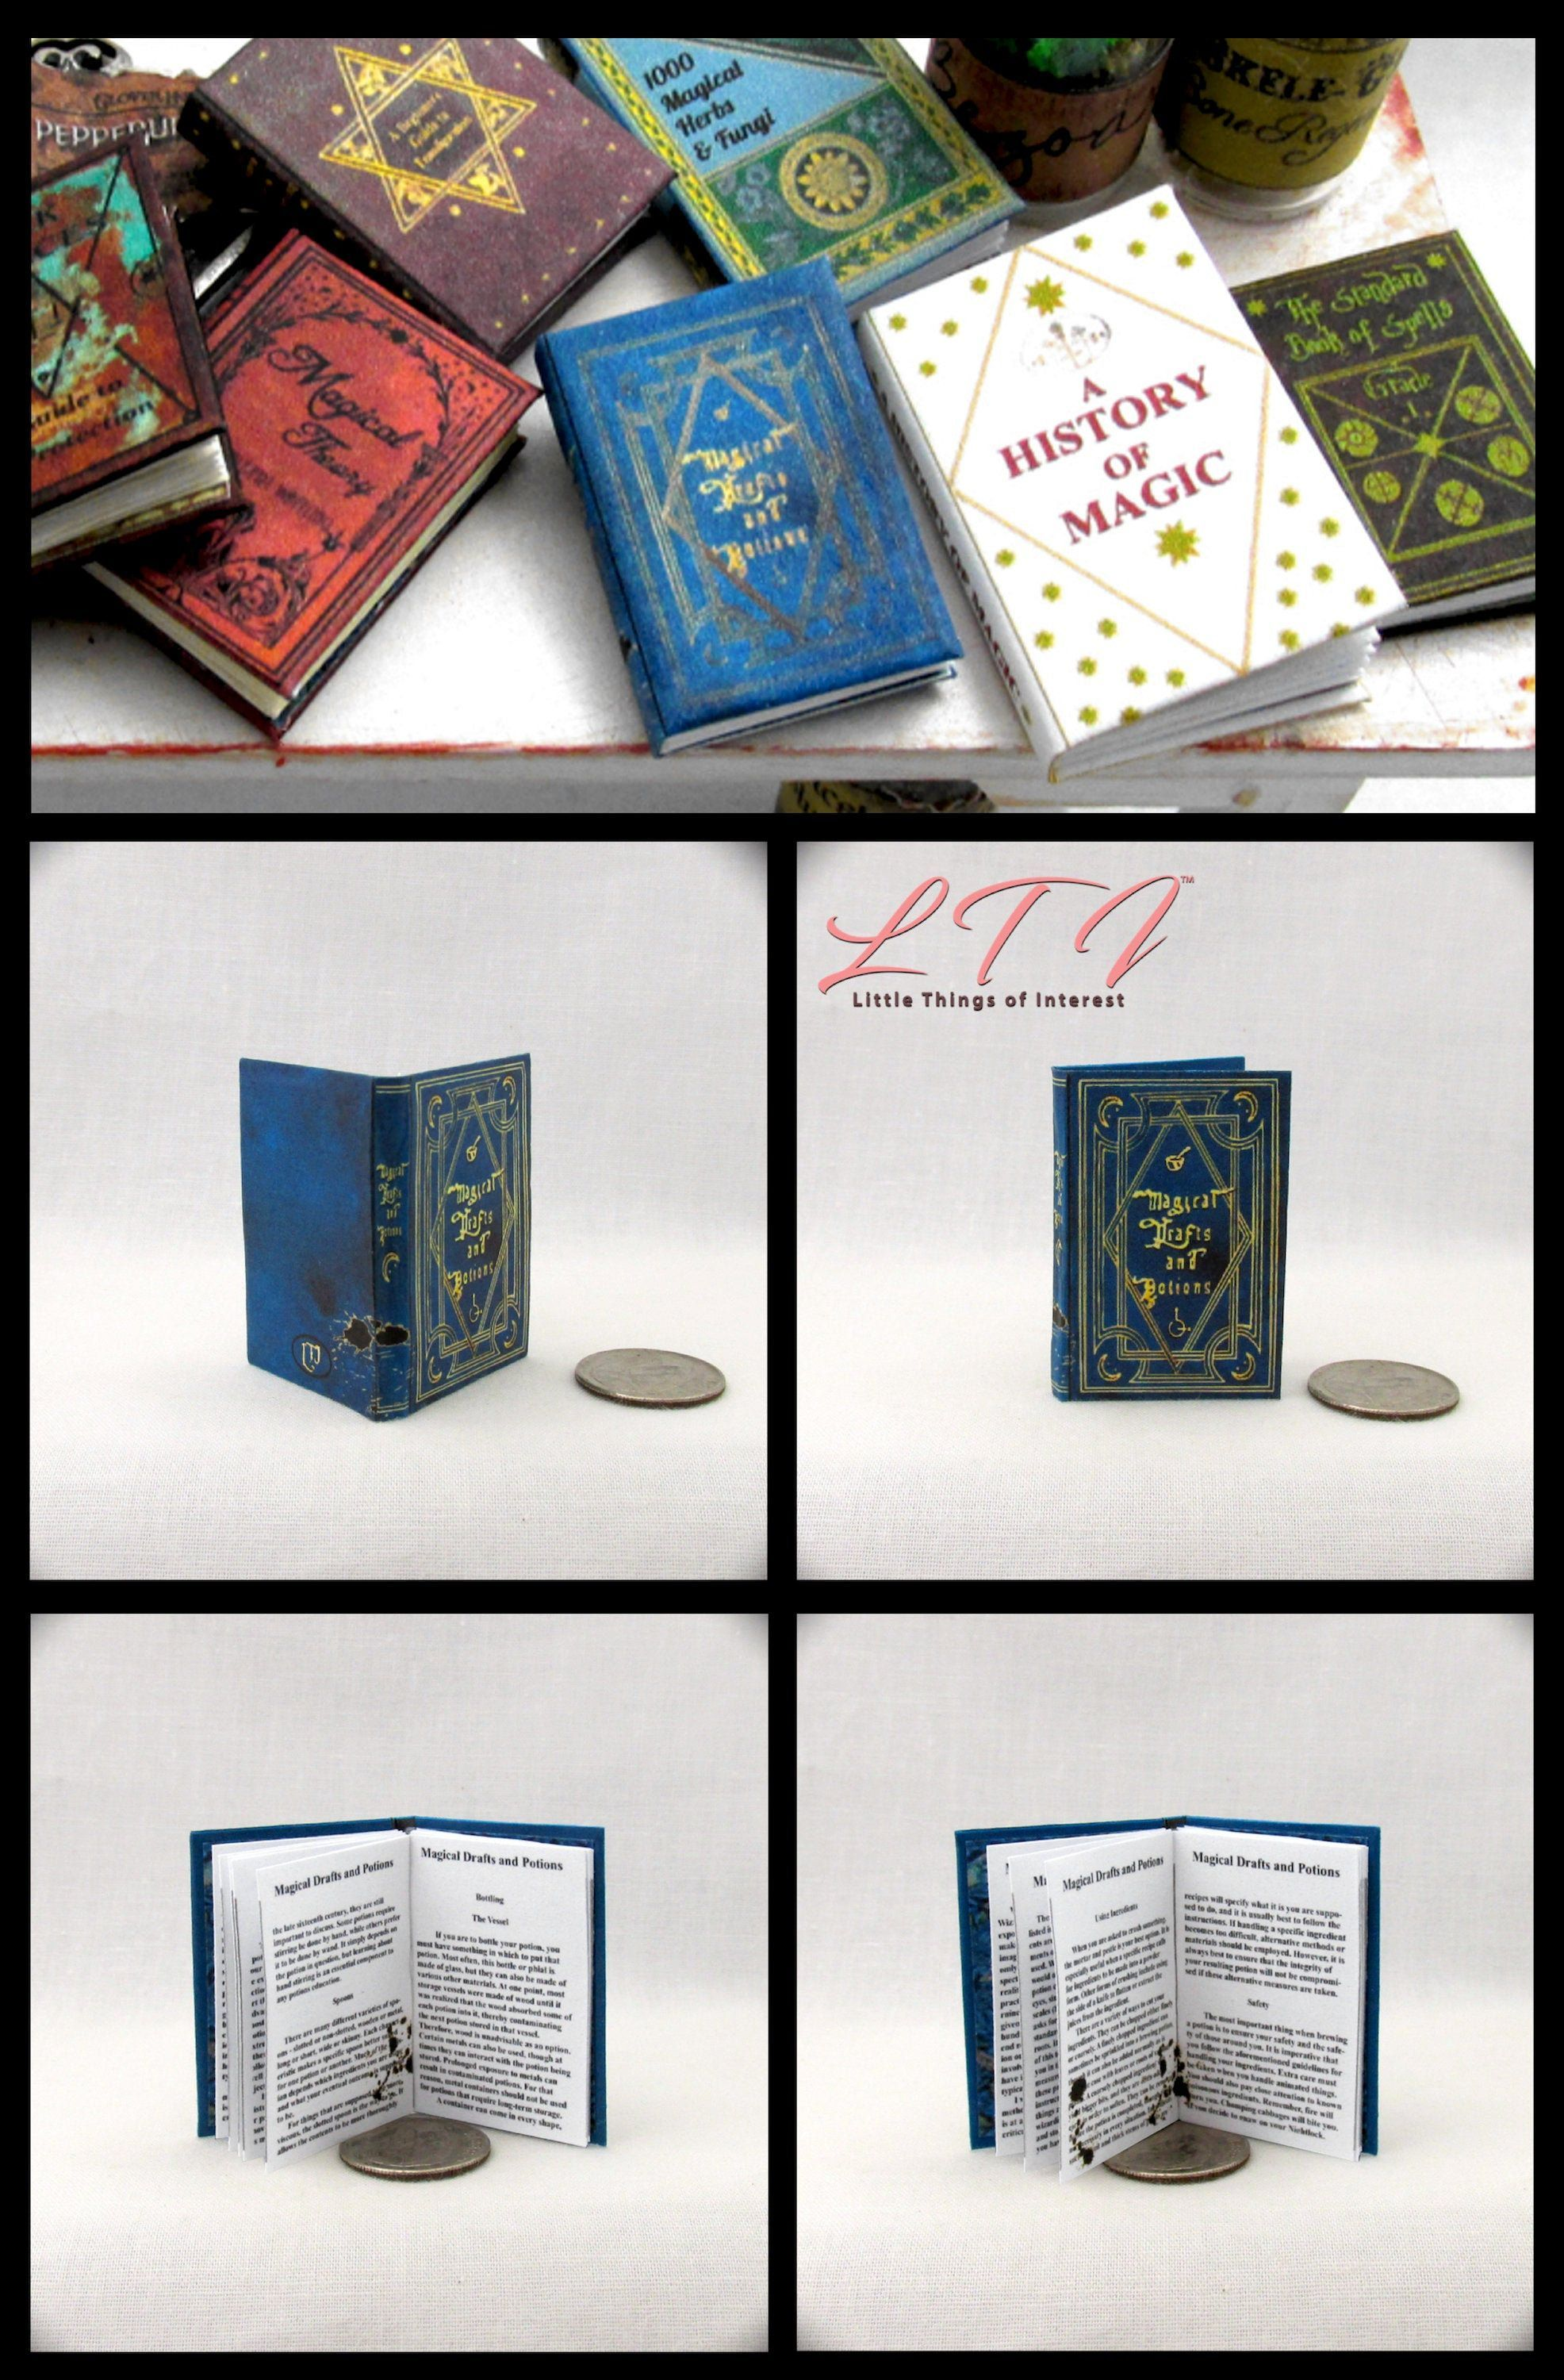 THE GREAT GATSBY Readable Dollhouse Miniature Book 1:12 Scale Book